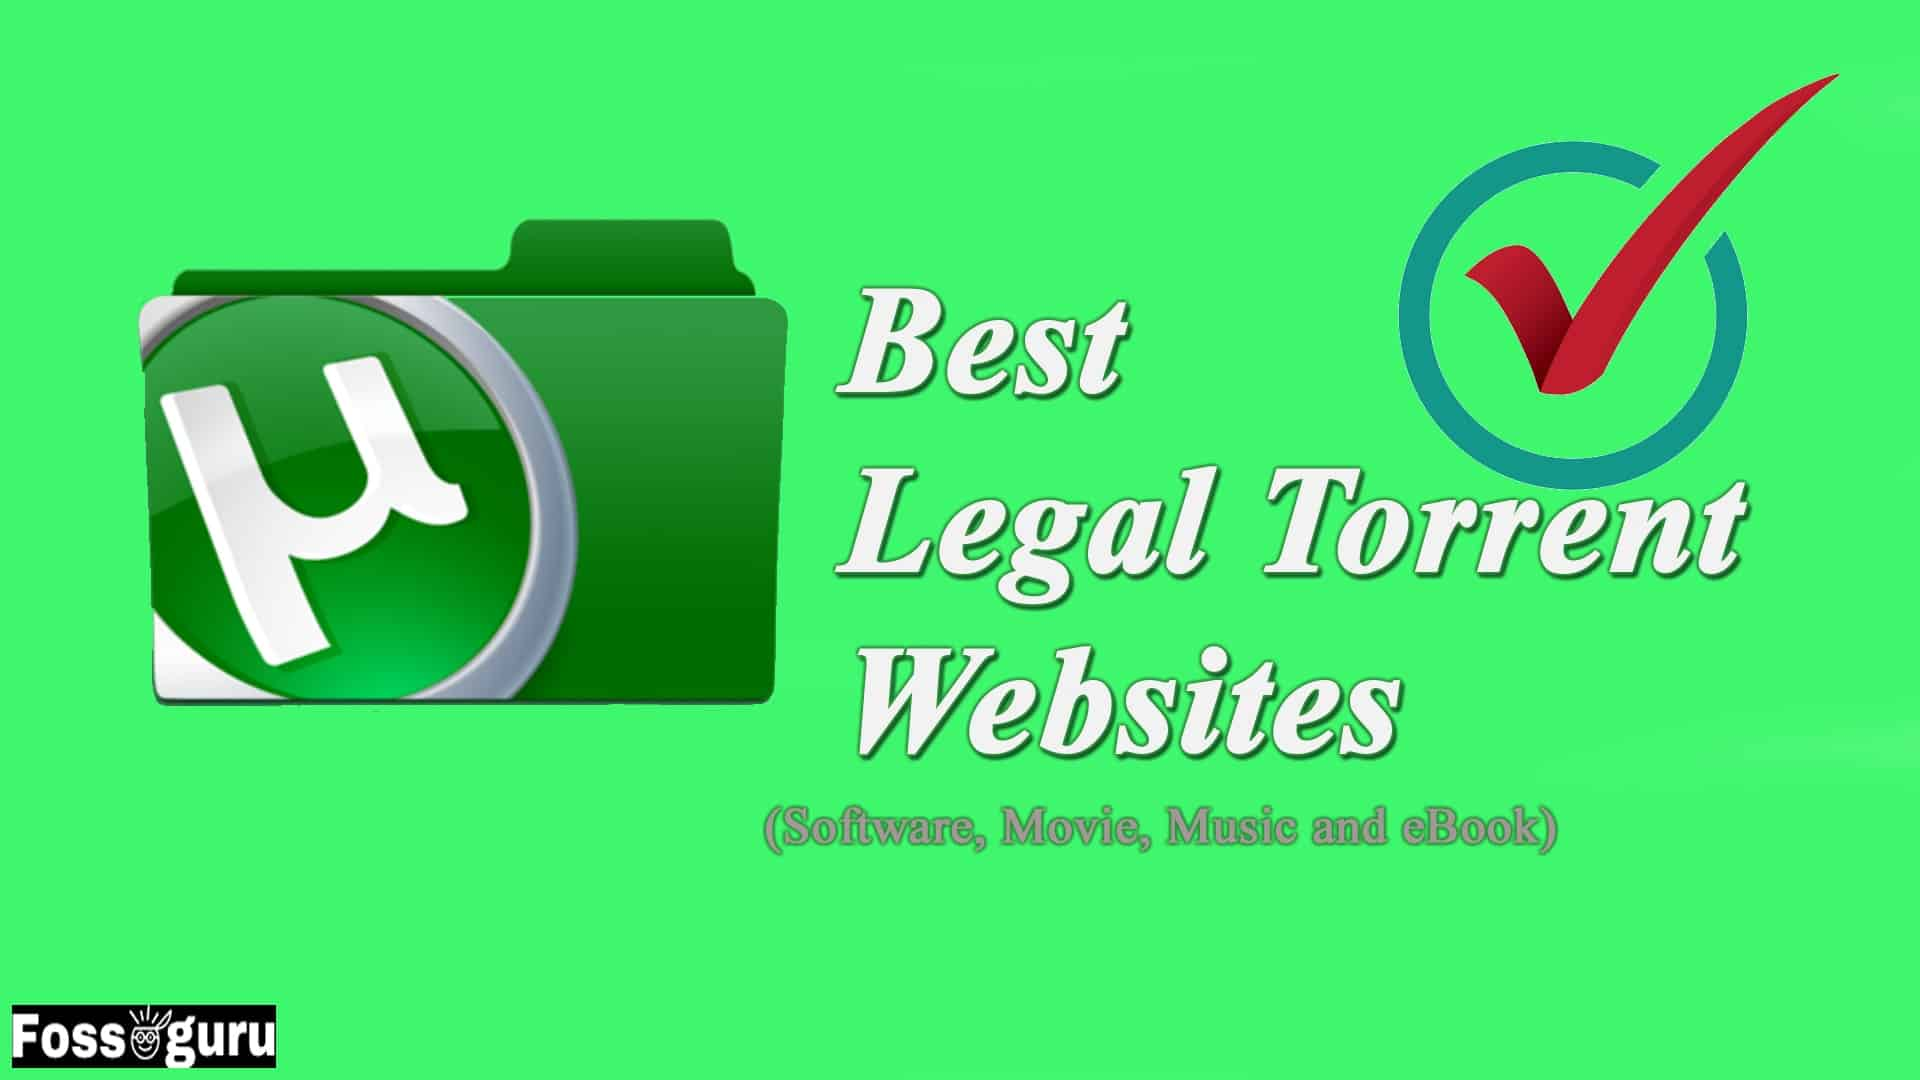 Best Torrent Sites That Are Legal For Software, Movie, And Ebook